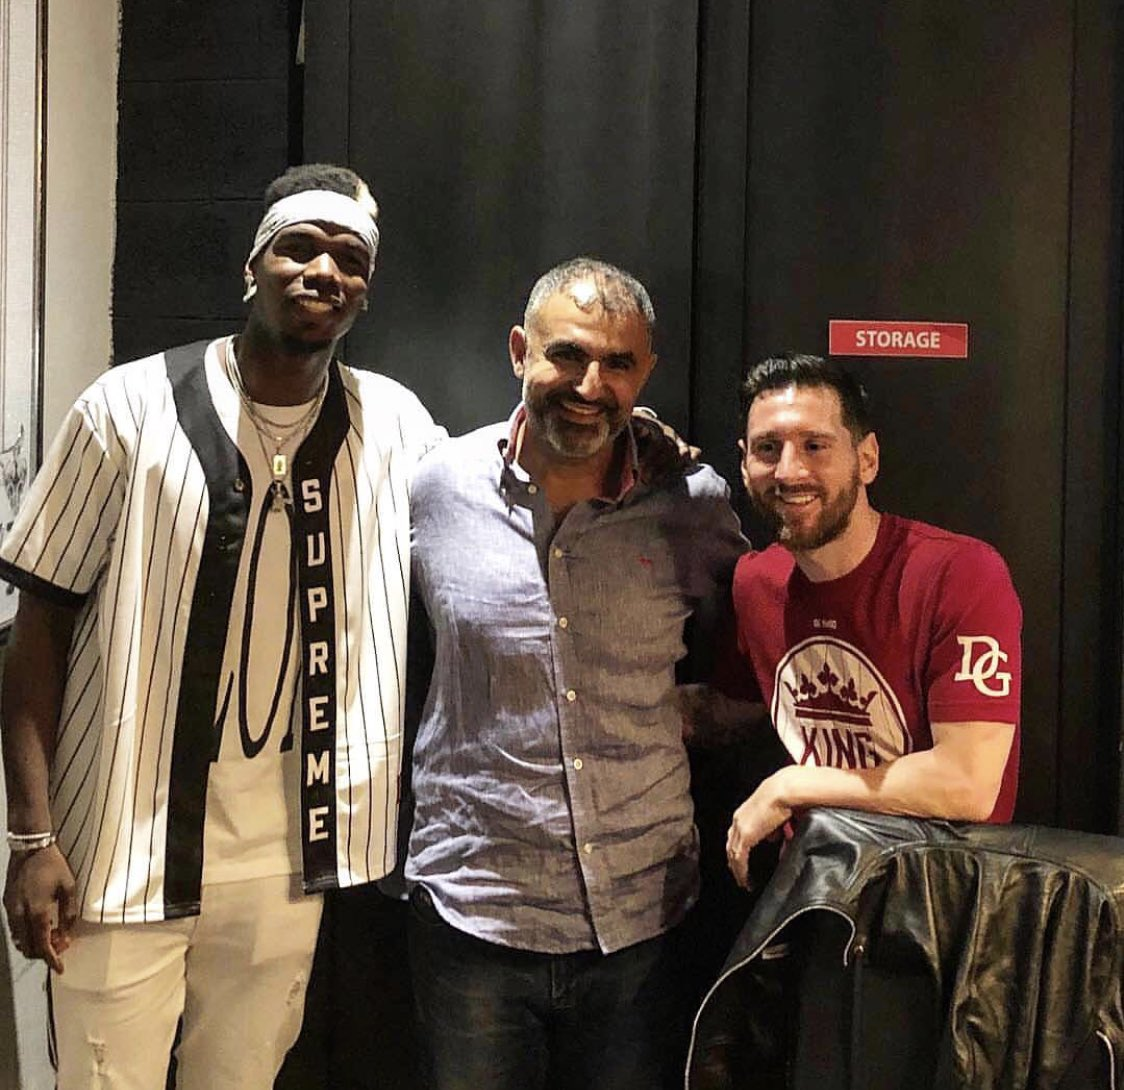 Photos: Pogba and Lionel Messi in Dubai today #mulive [ig various] <br>http://pic.twitter.com/2fbLzbfr4G